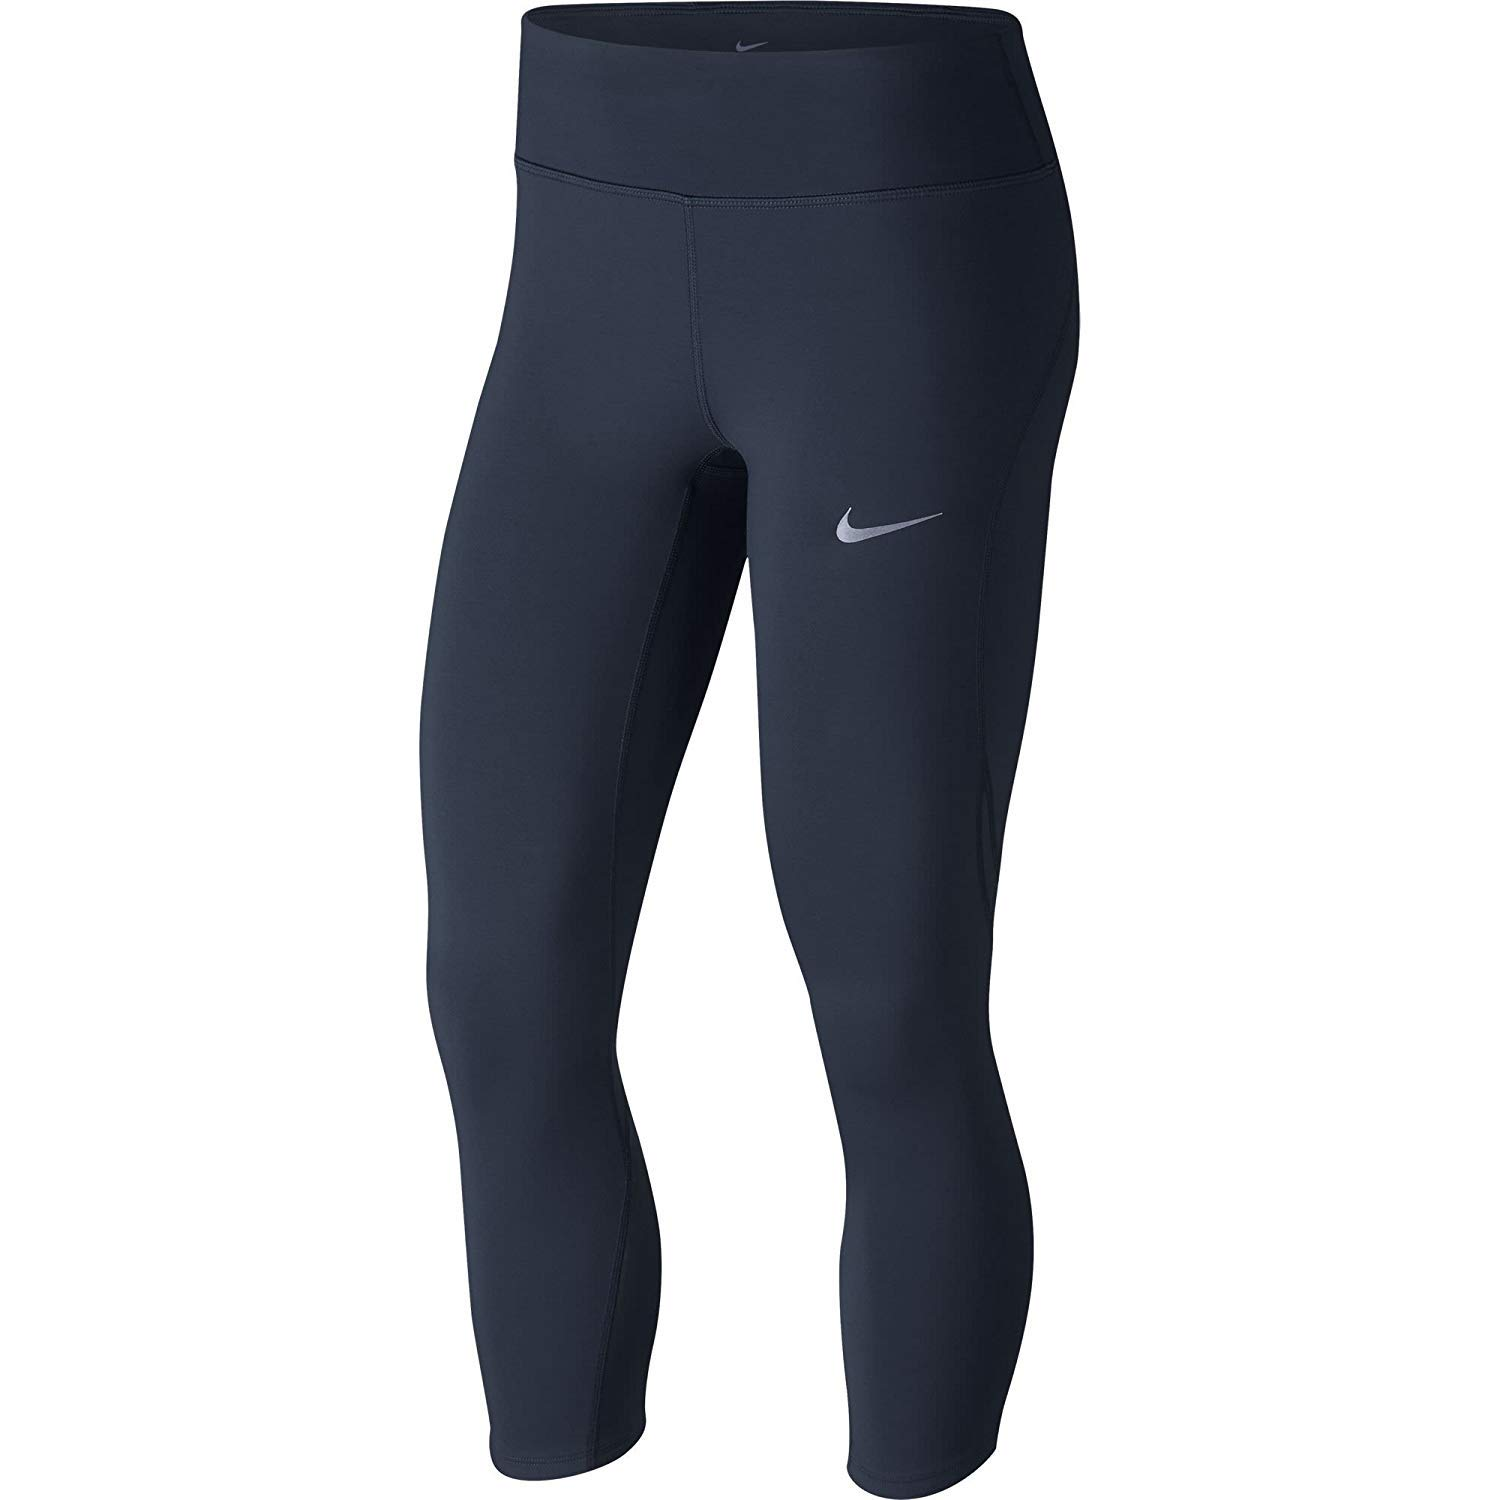 Nike Women's Power Epic Lux Running Crops Obsidian MED